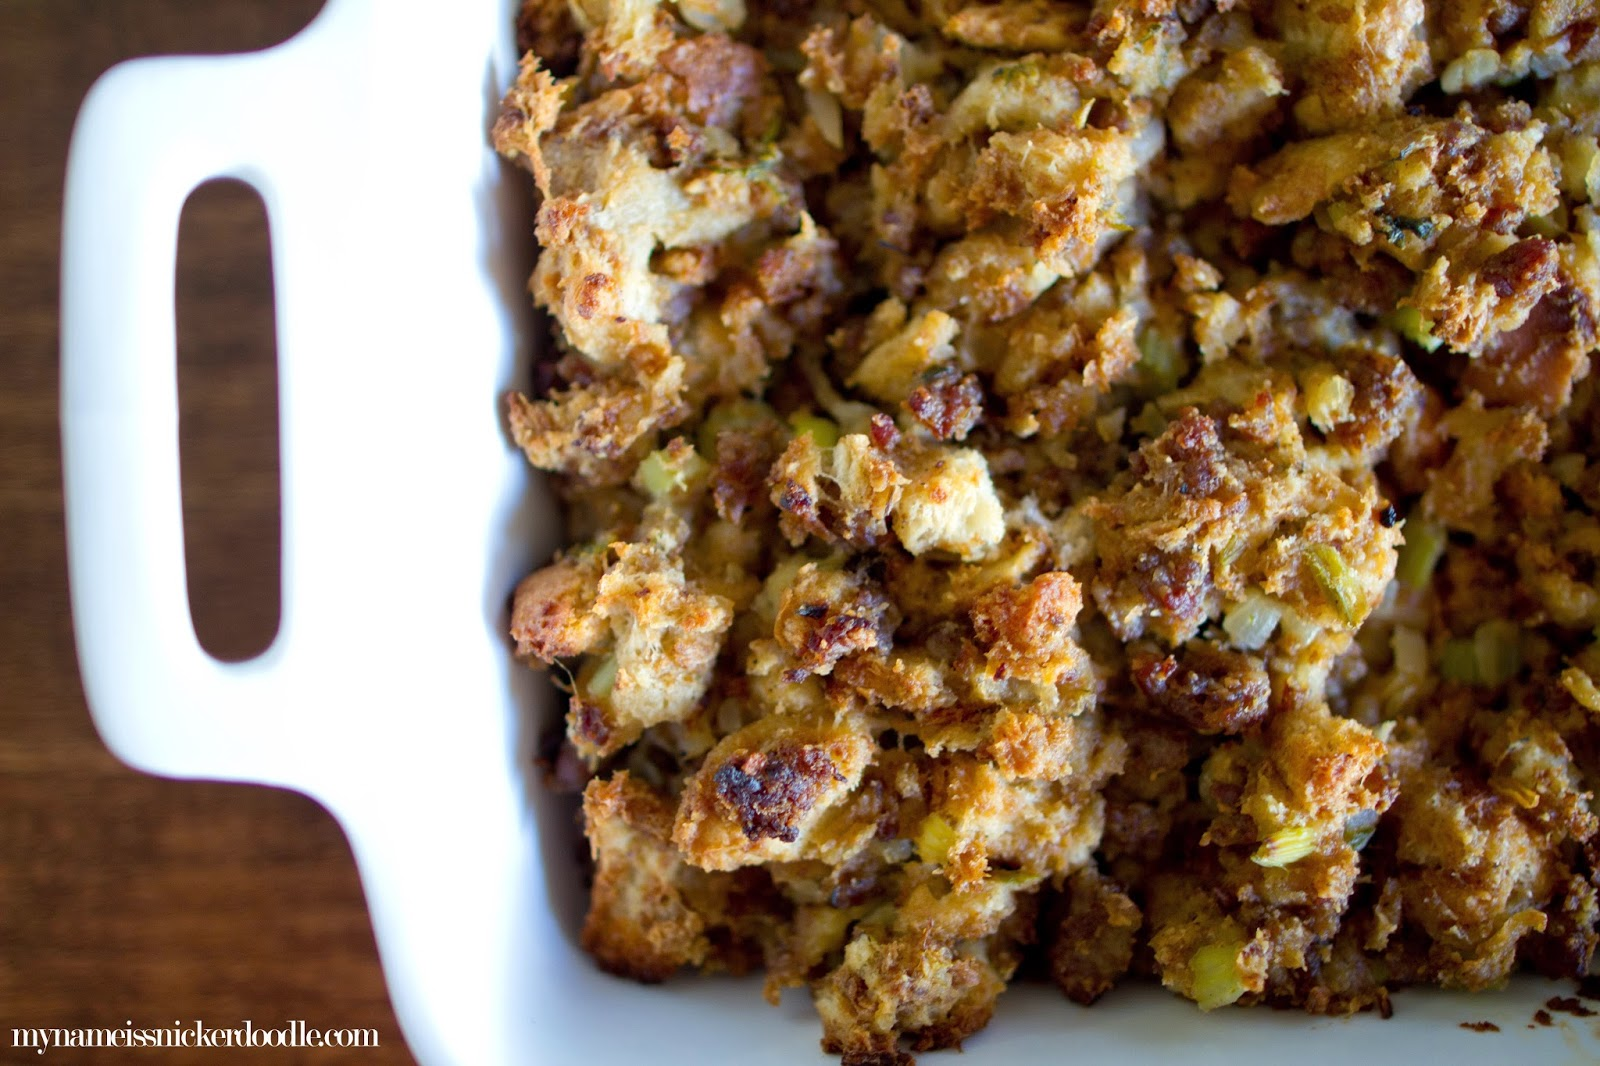 This homemade stuffing (or dressing) is made with sausage and onions.  The perfect savory side for your Thanksgiving meal!  |  My Name Is Snickerdoodle